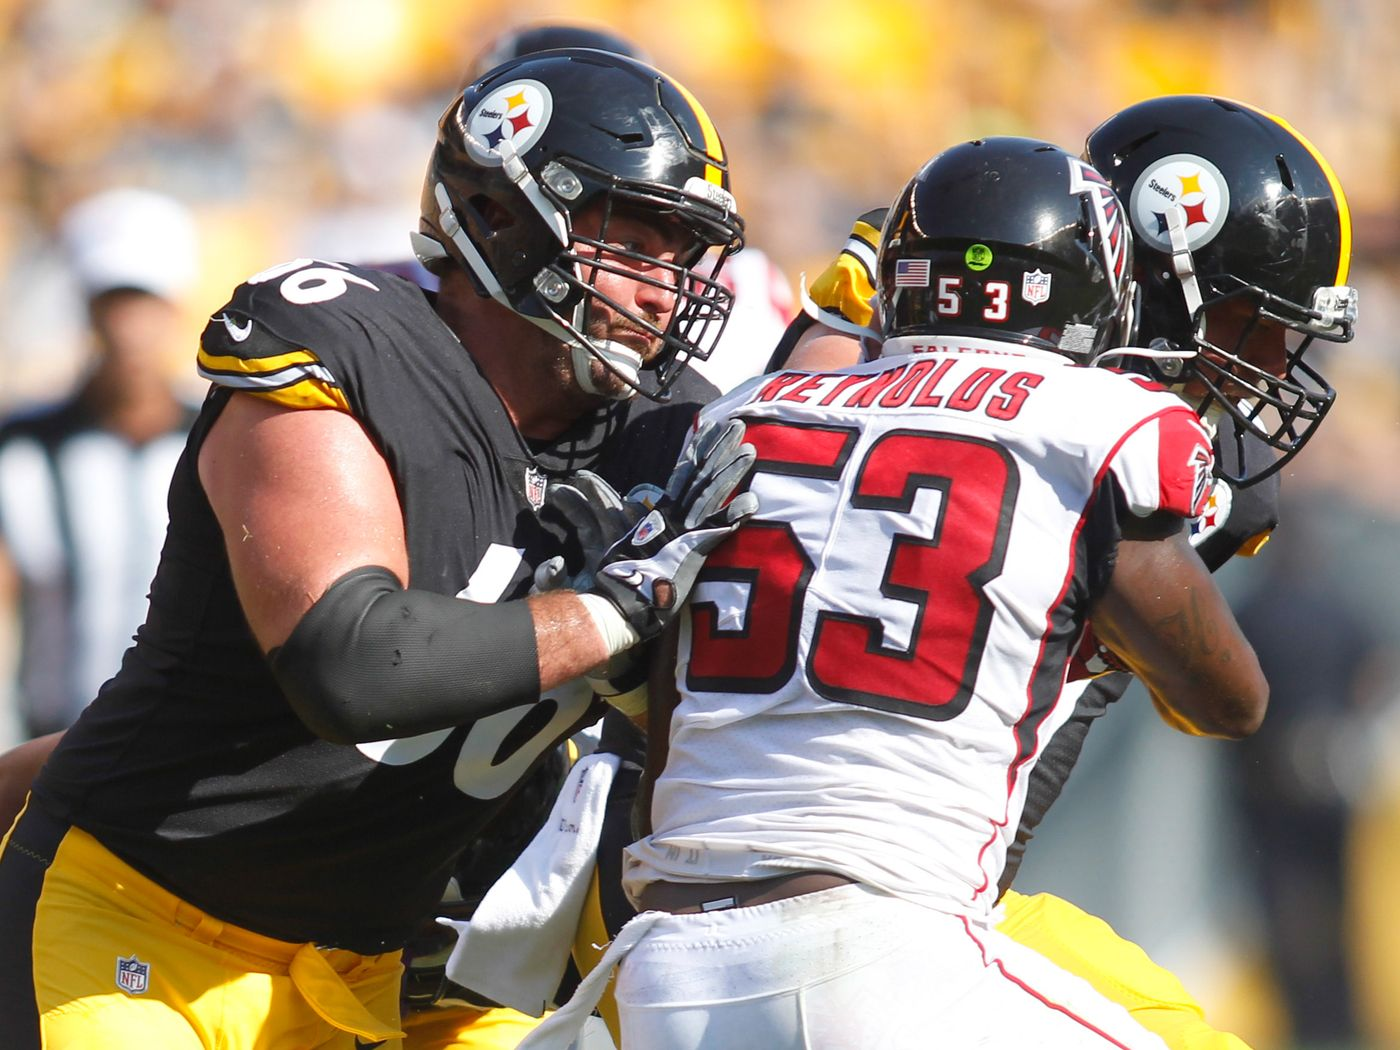 David DeCastro sees linemen looking like sumo wrestlers with new 1400x1050